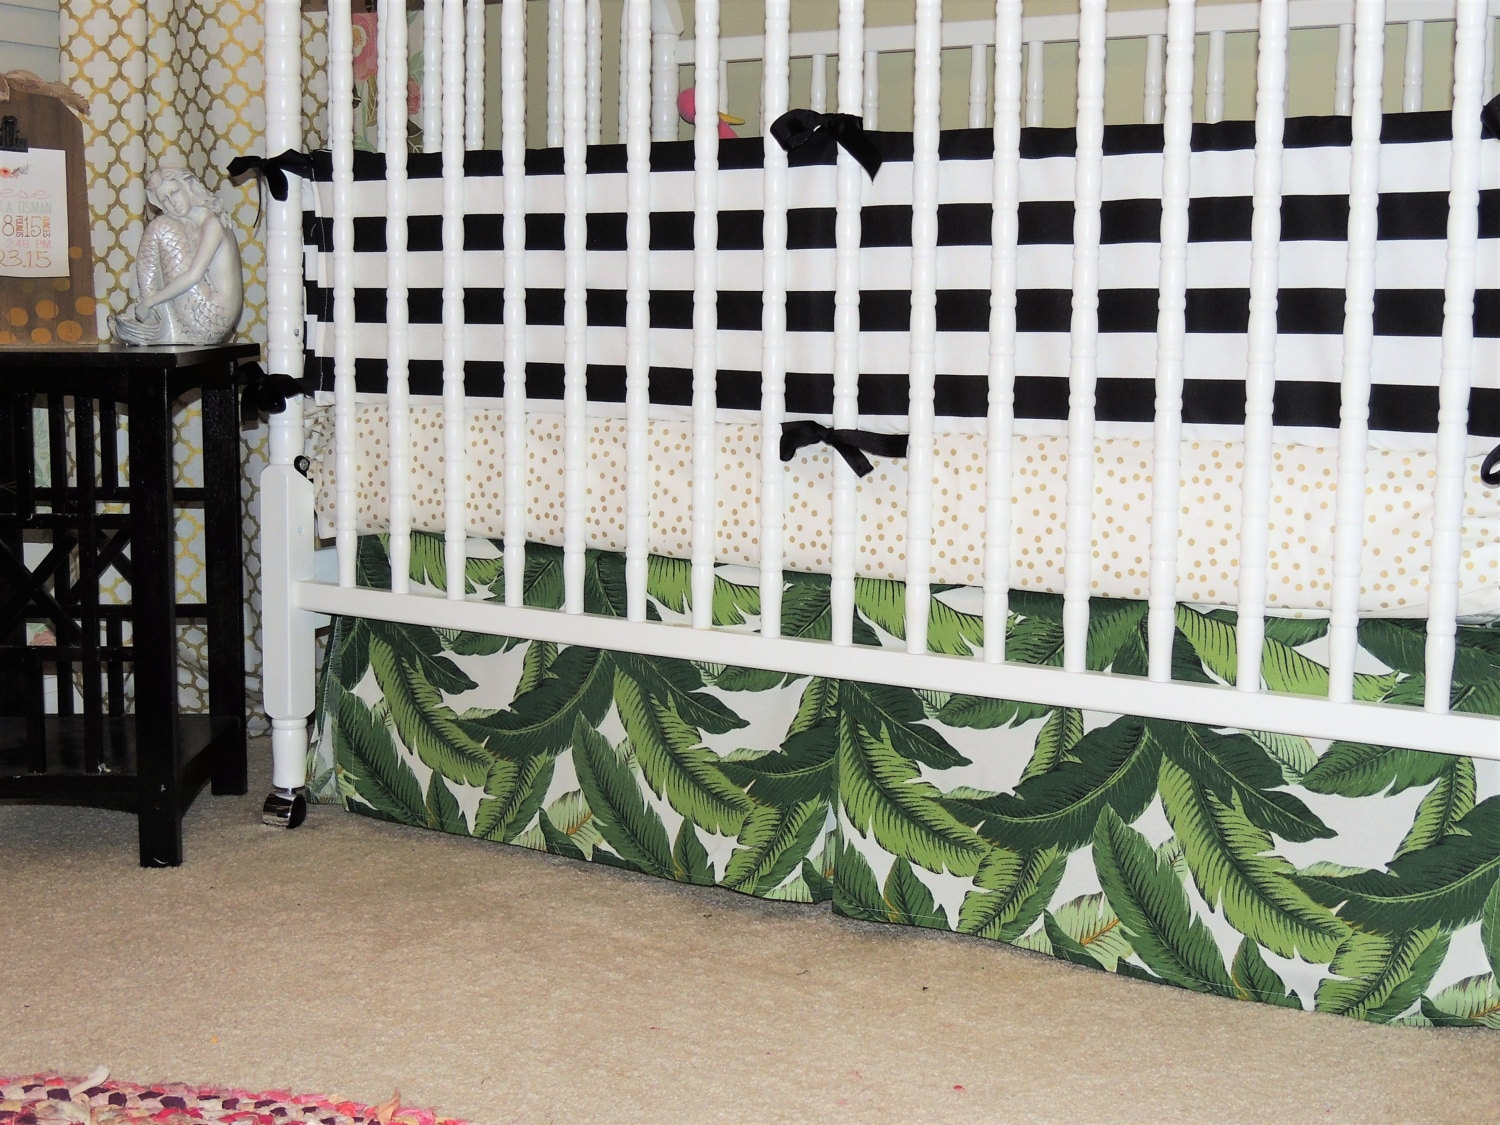 Crib for sale in palm bay - Custom Crib Bedding In Black White Gold And Green With Tropical Leaf Print Banana Leaf Crib Skirt Palm Leaf Crib Bedding Tropical Crib